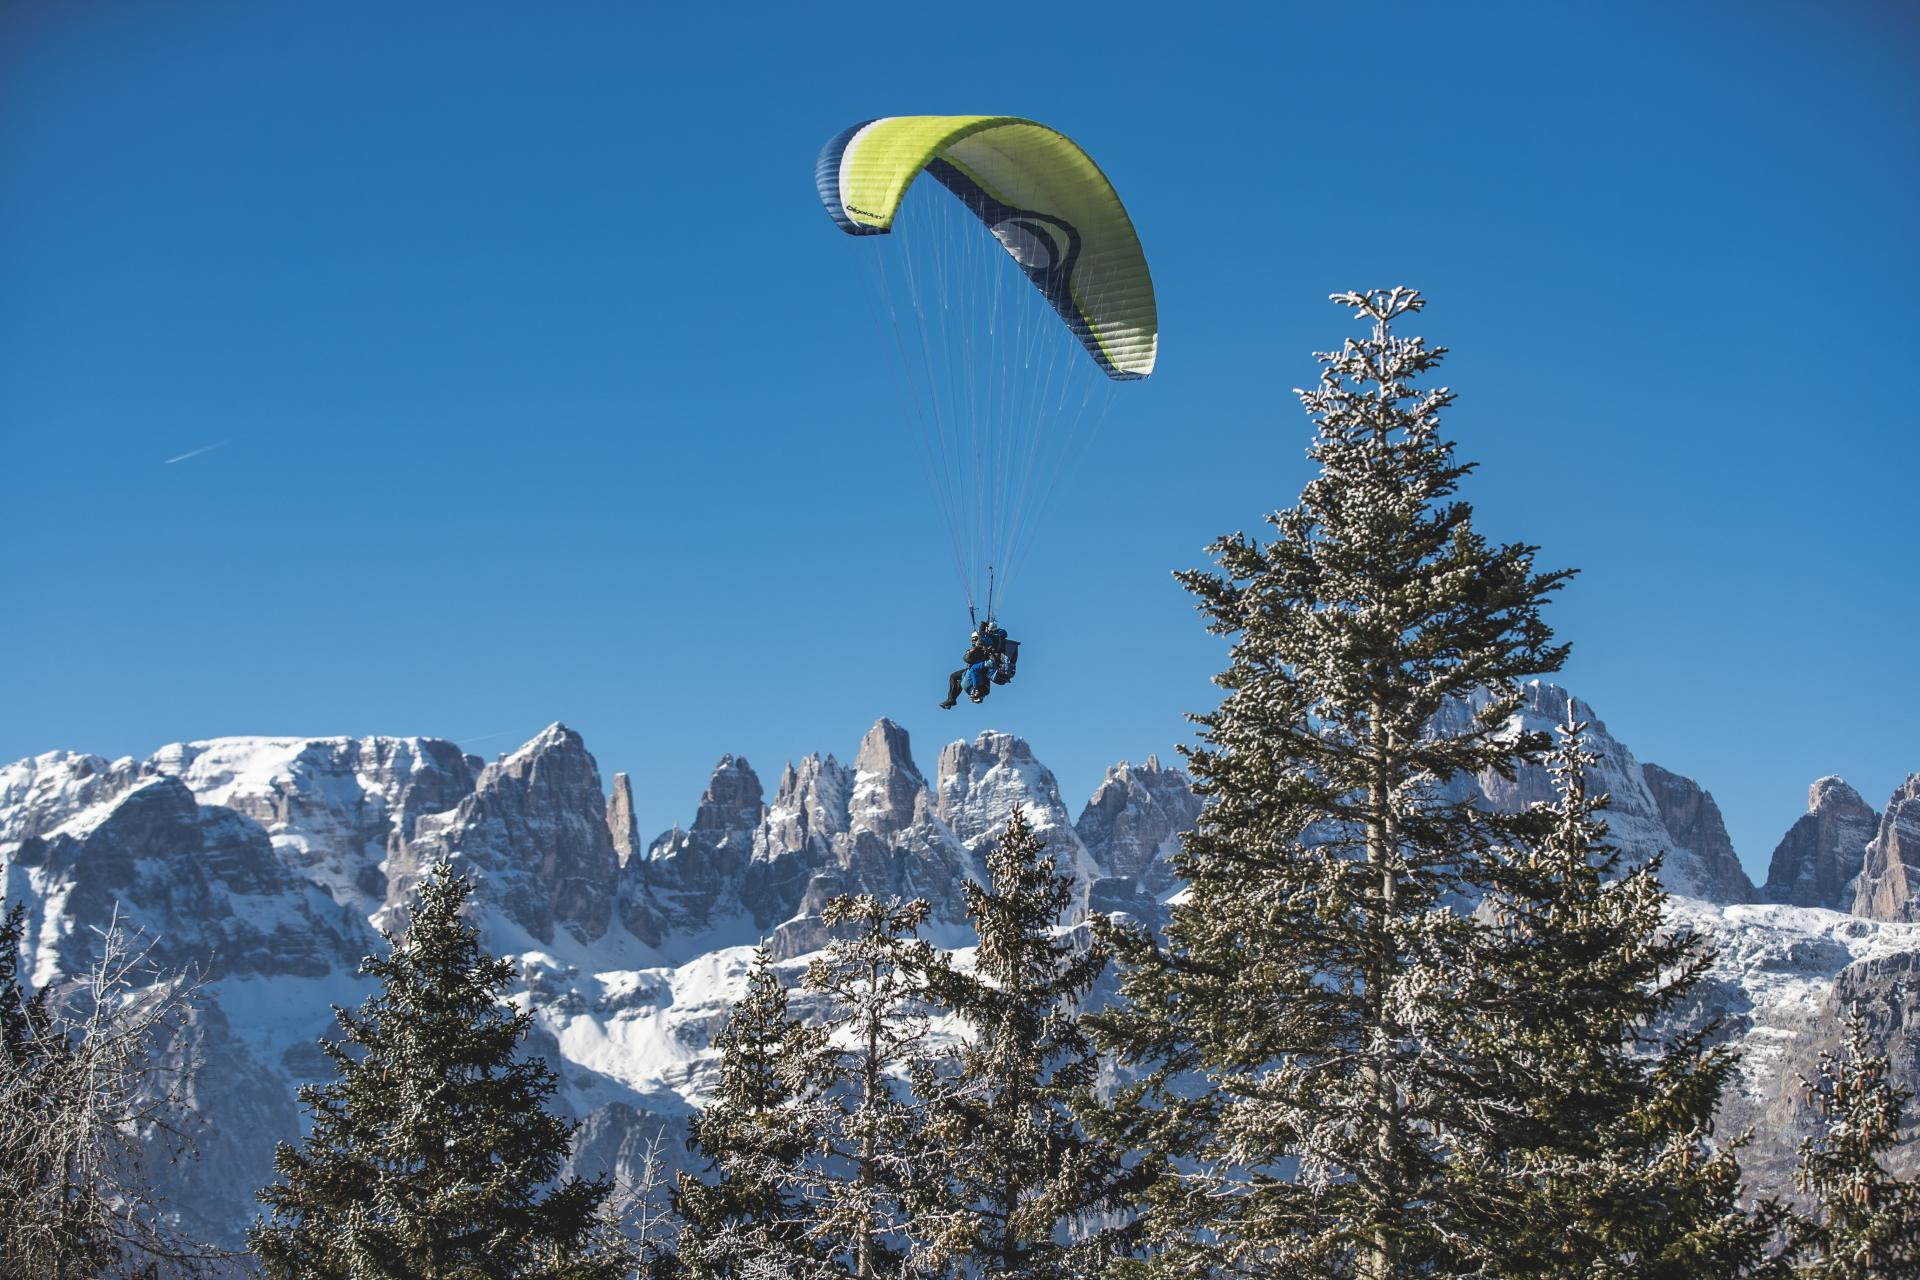 Para-gliding and Hang-gliding